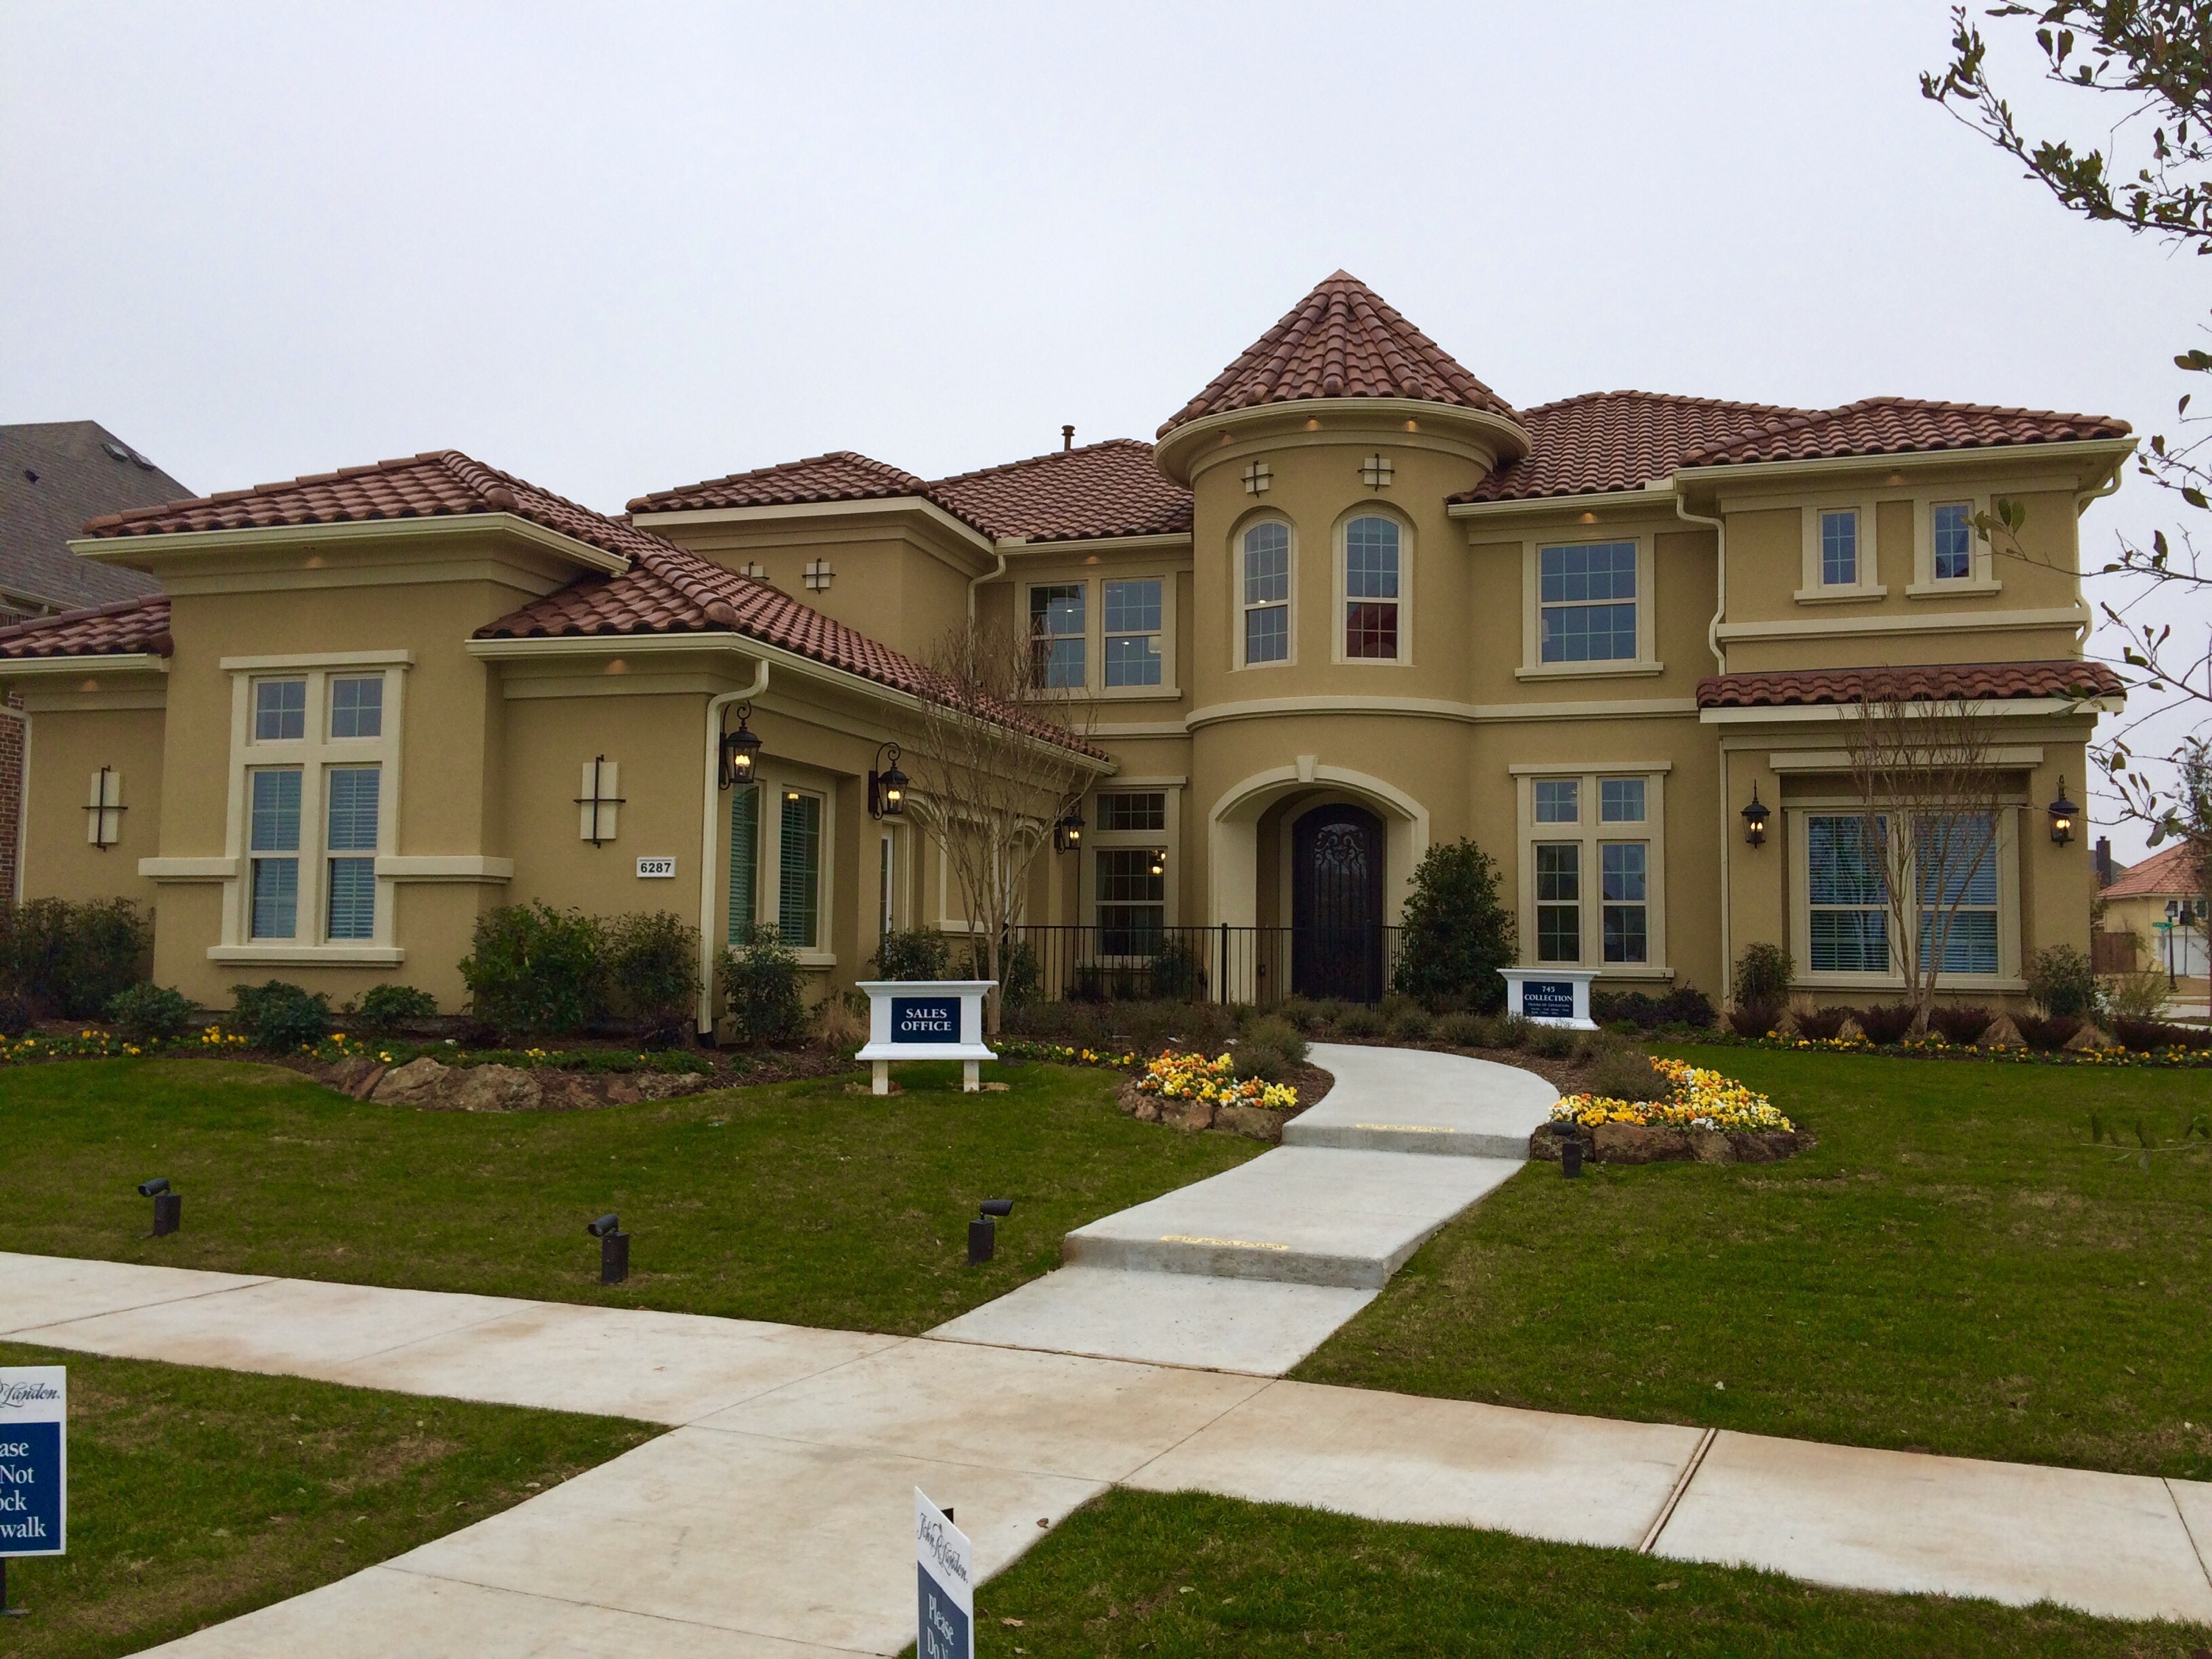 John R Landon Homes At In Frisco Has Added A Beautiful Stucco Home To